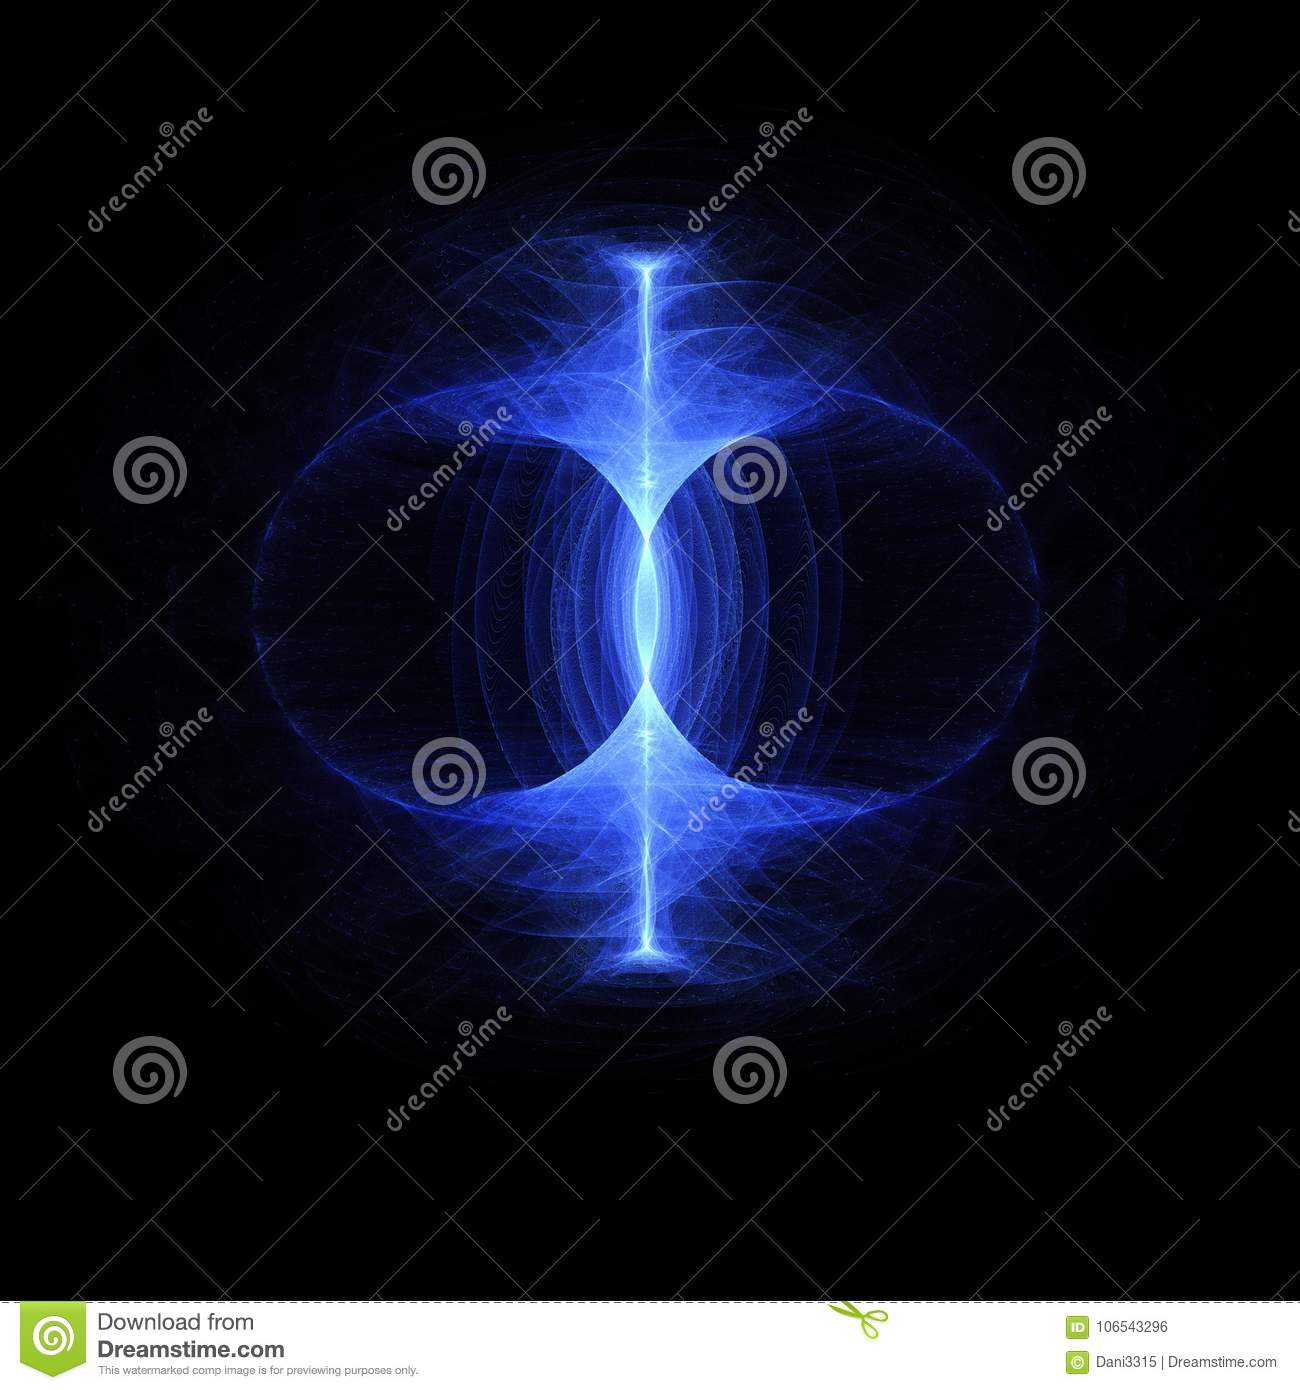 Zero point energy field, sustainable high particle energy flow through a torus. Magnetic field, singularity, gravitational waves a